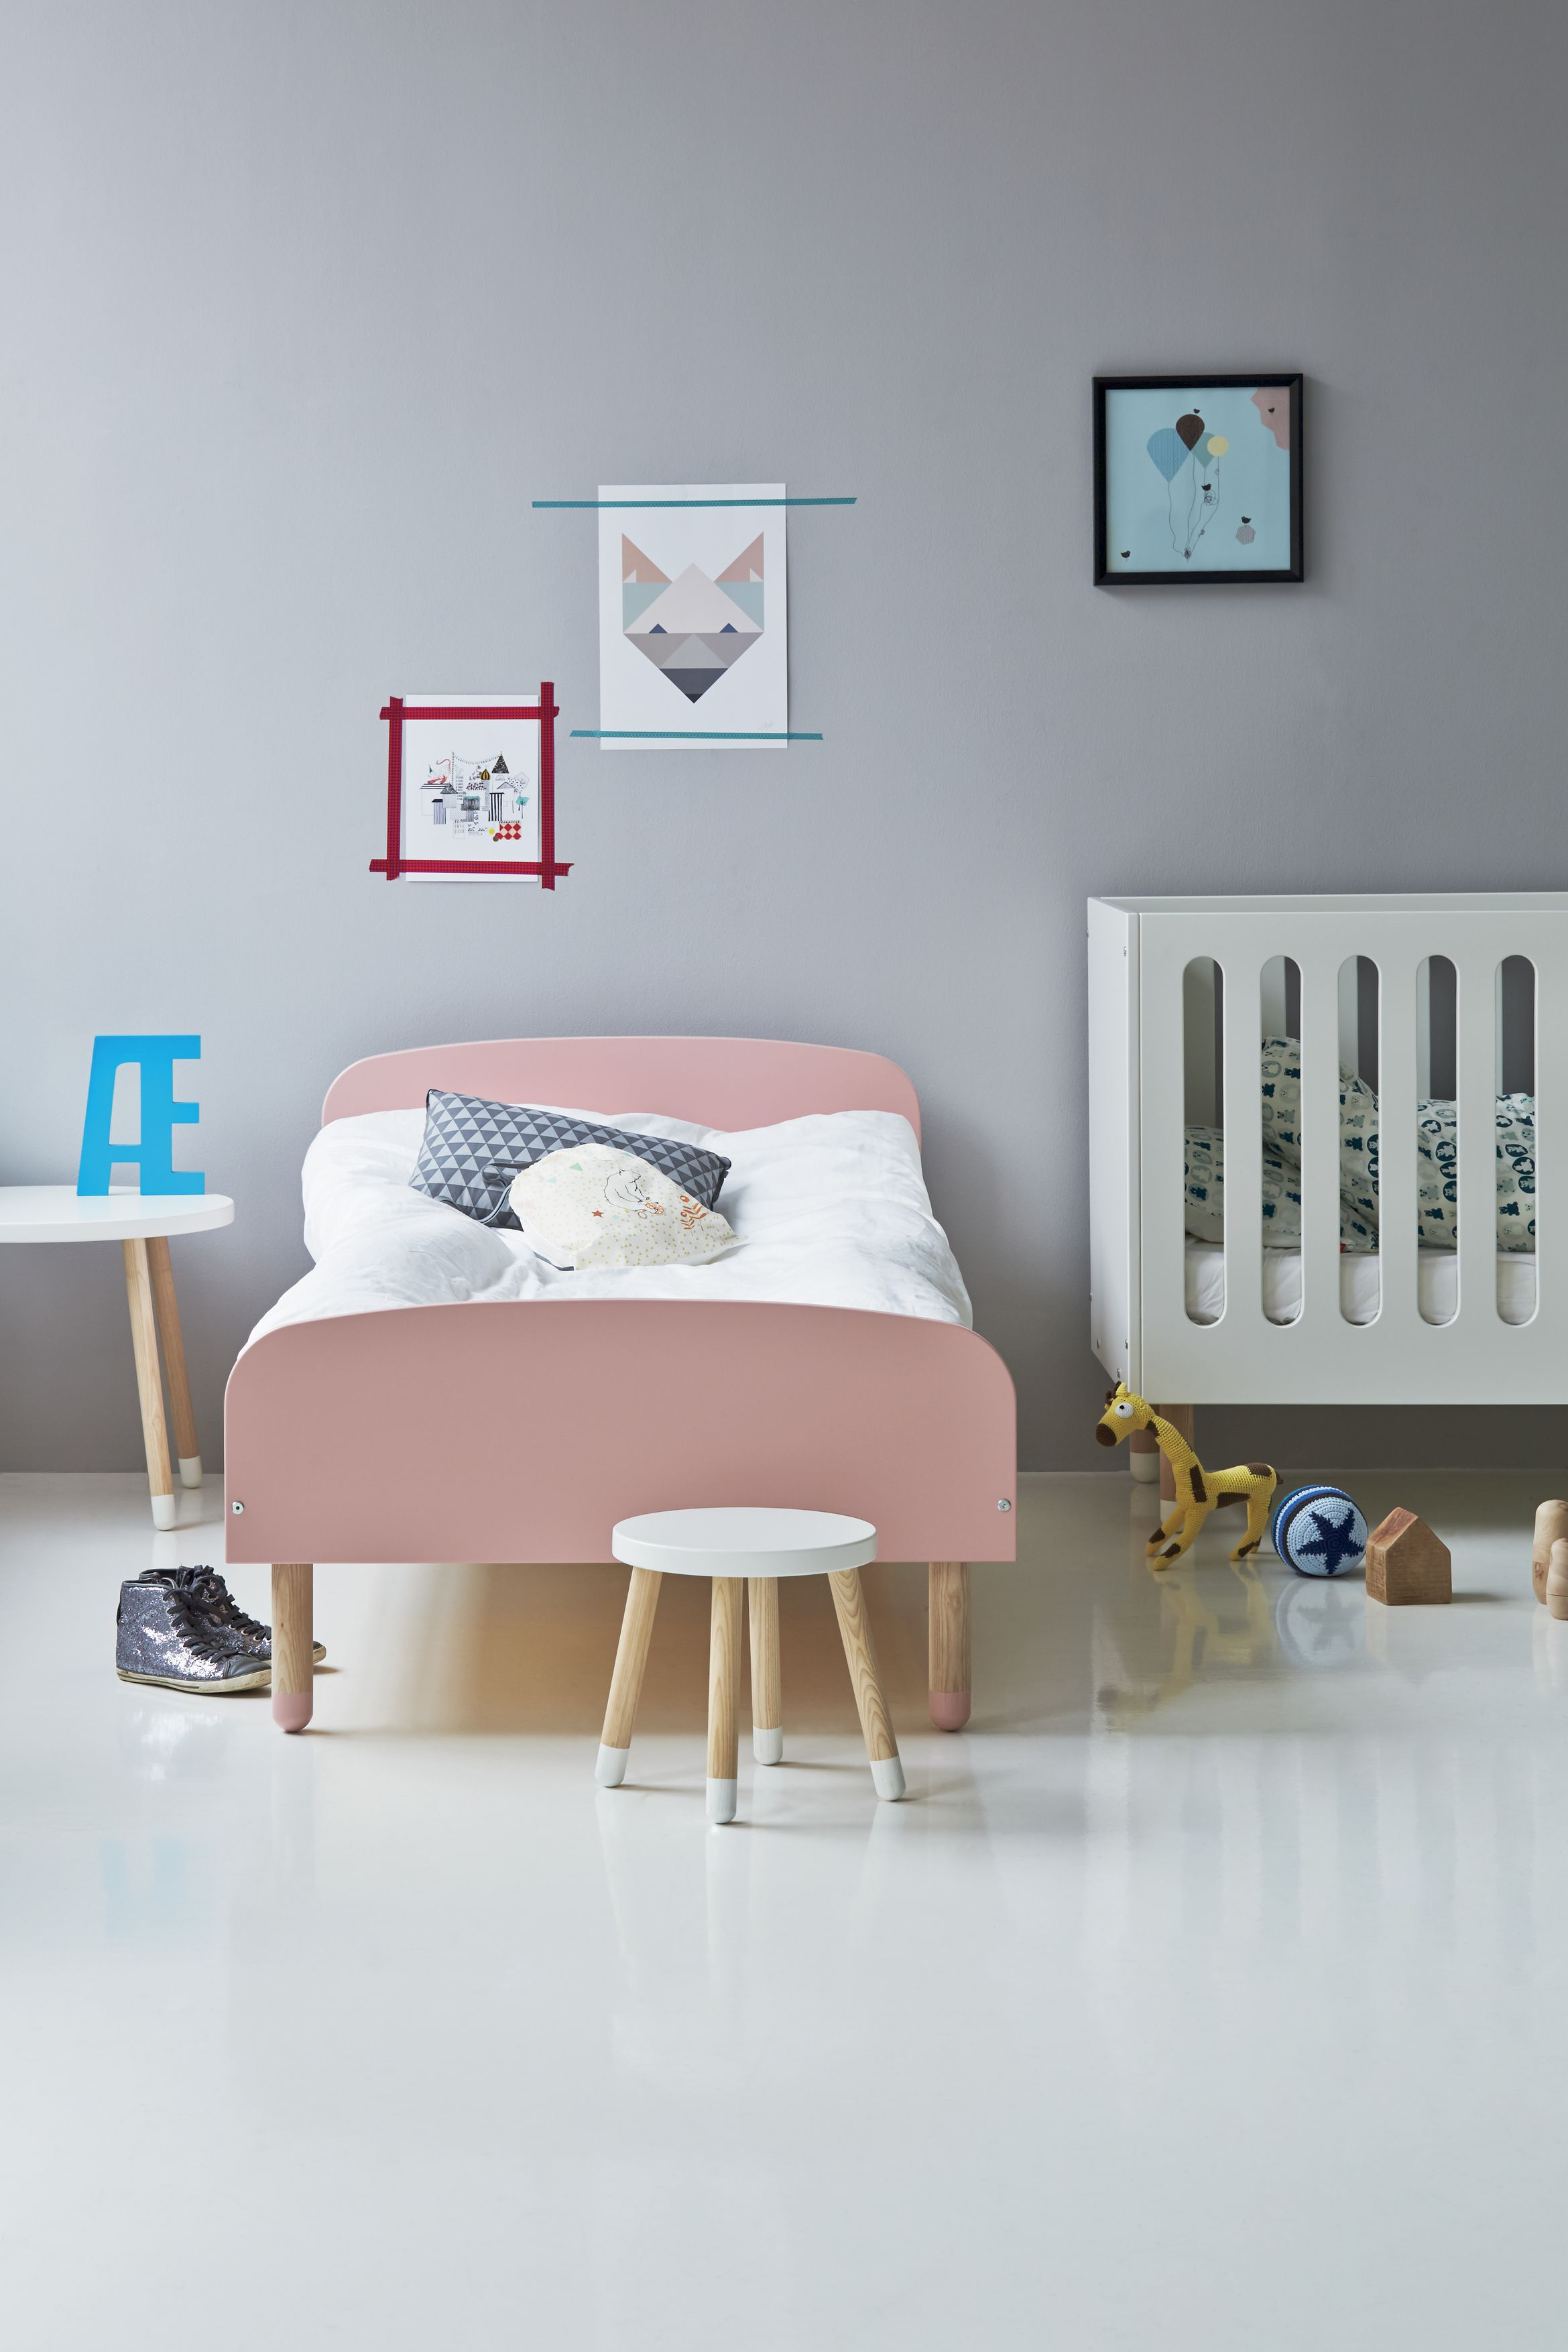 flexa creation early dew : Simple Well Designed Modern Bed Which Is Perfect For Both Young